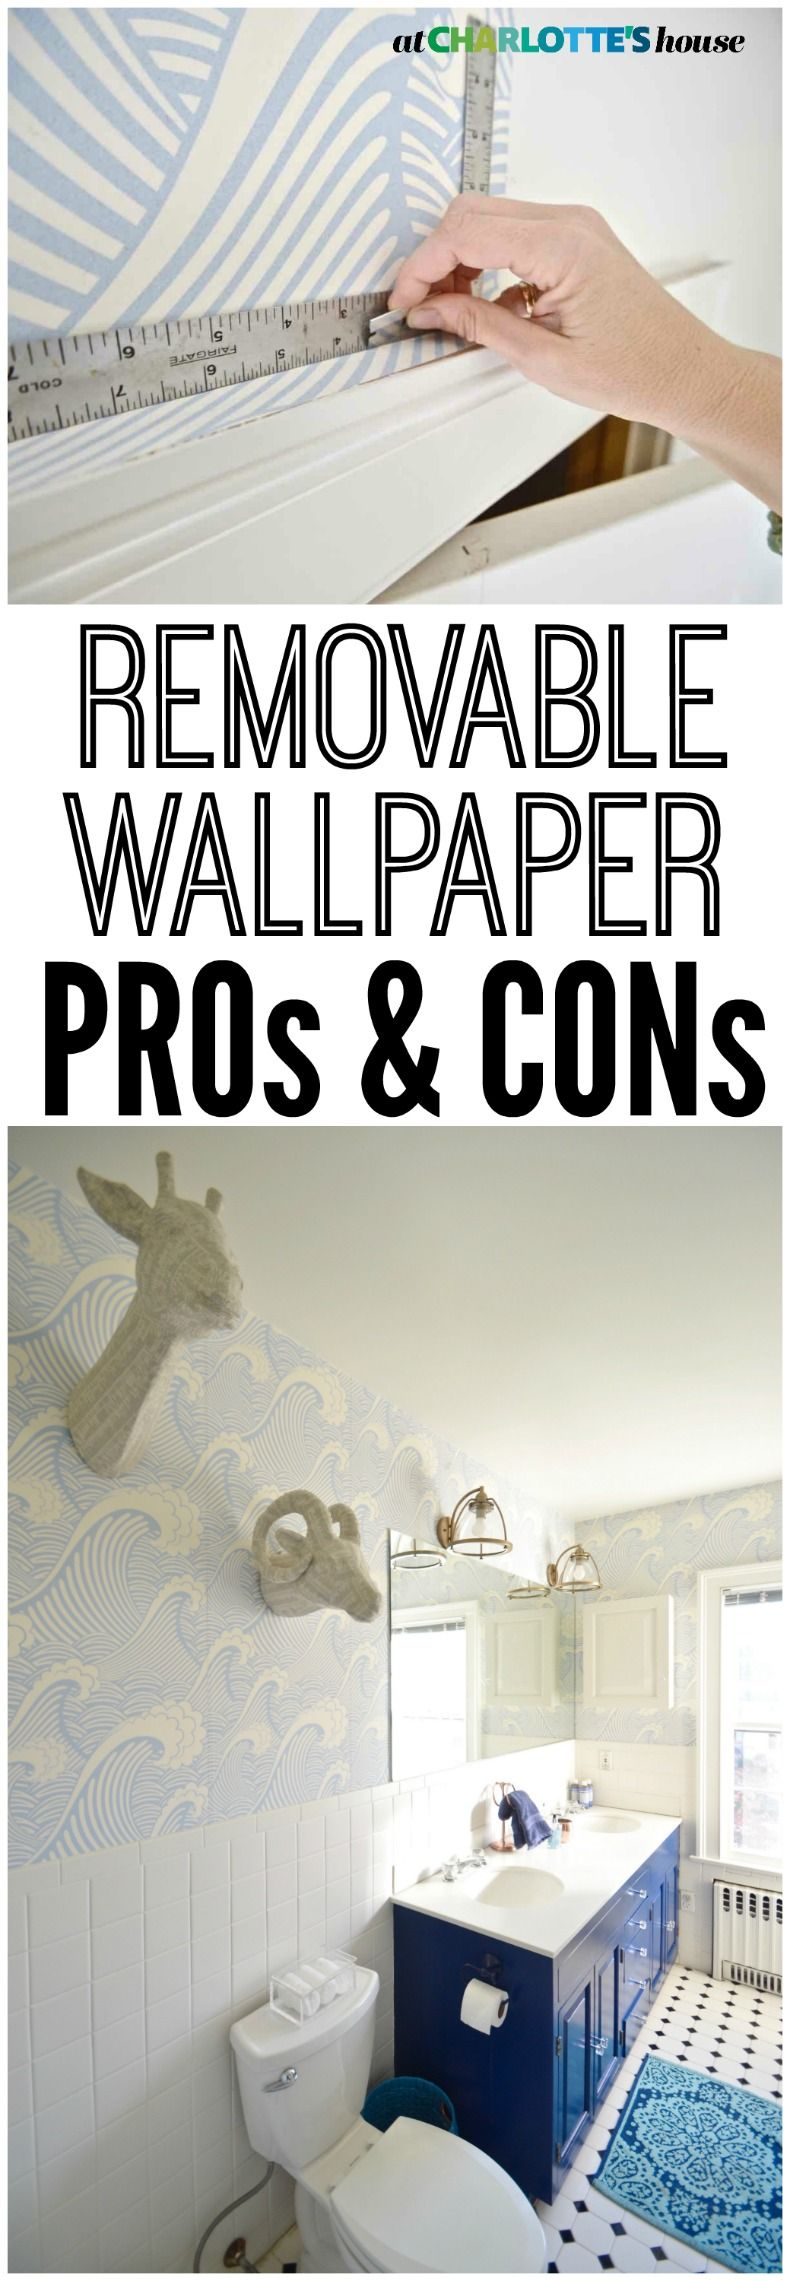 How To Removable Wallpaper Wallpaper accent wall